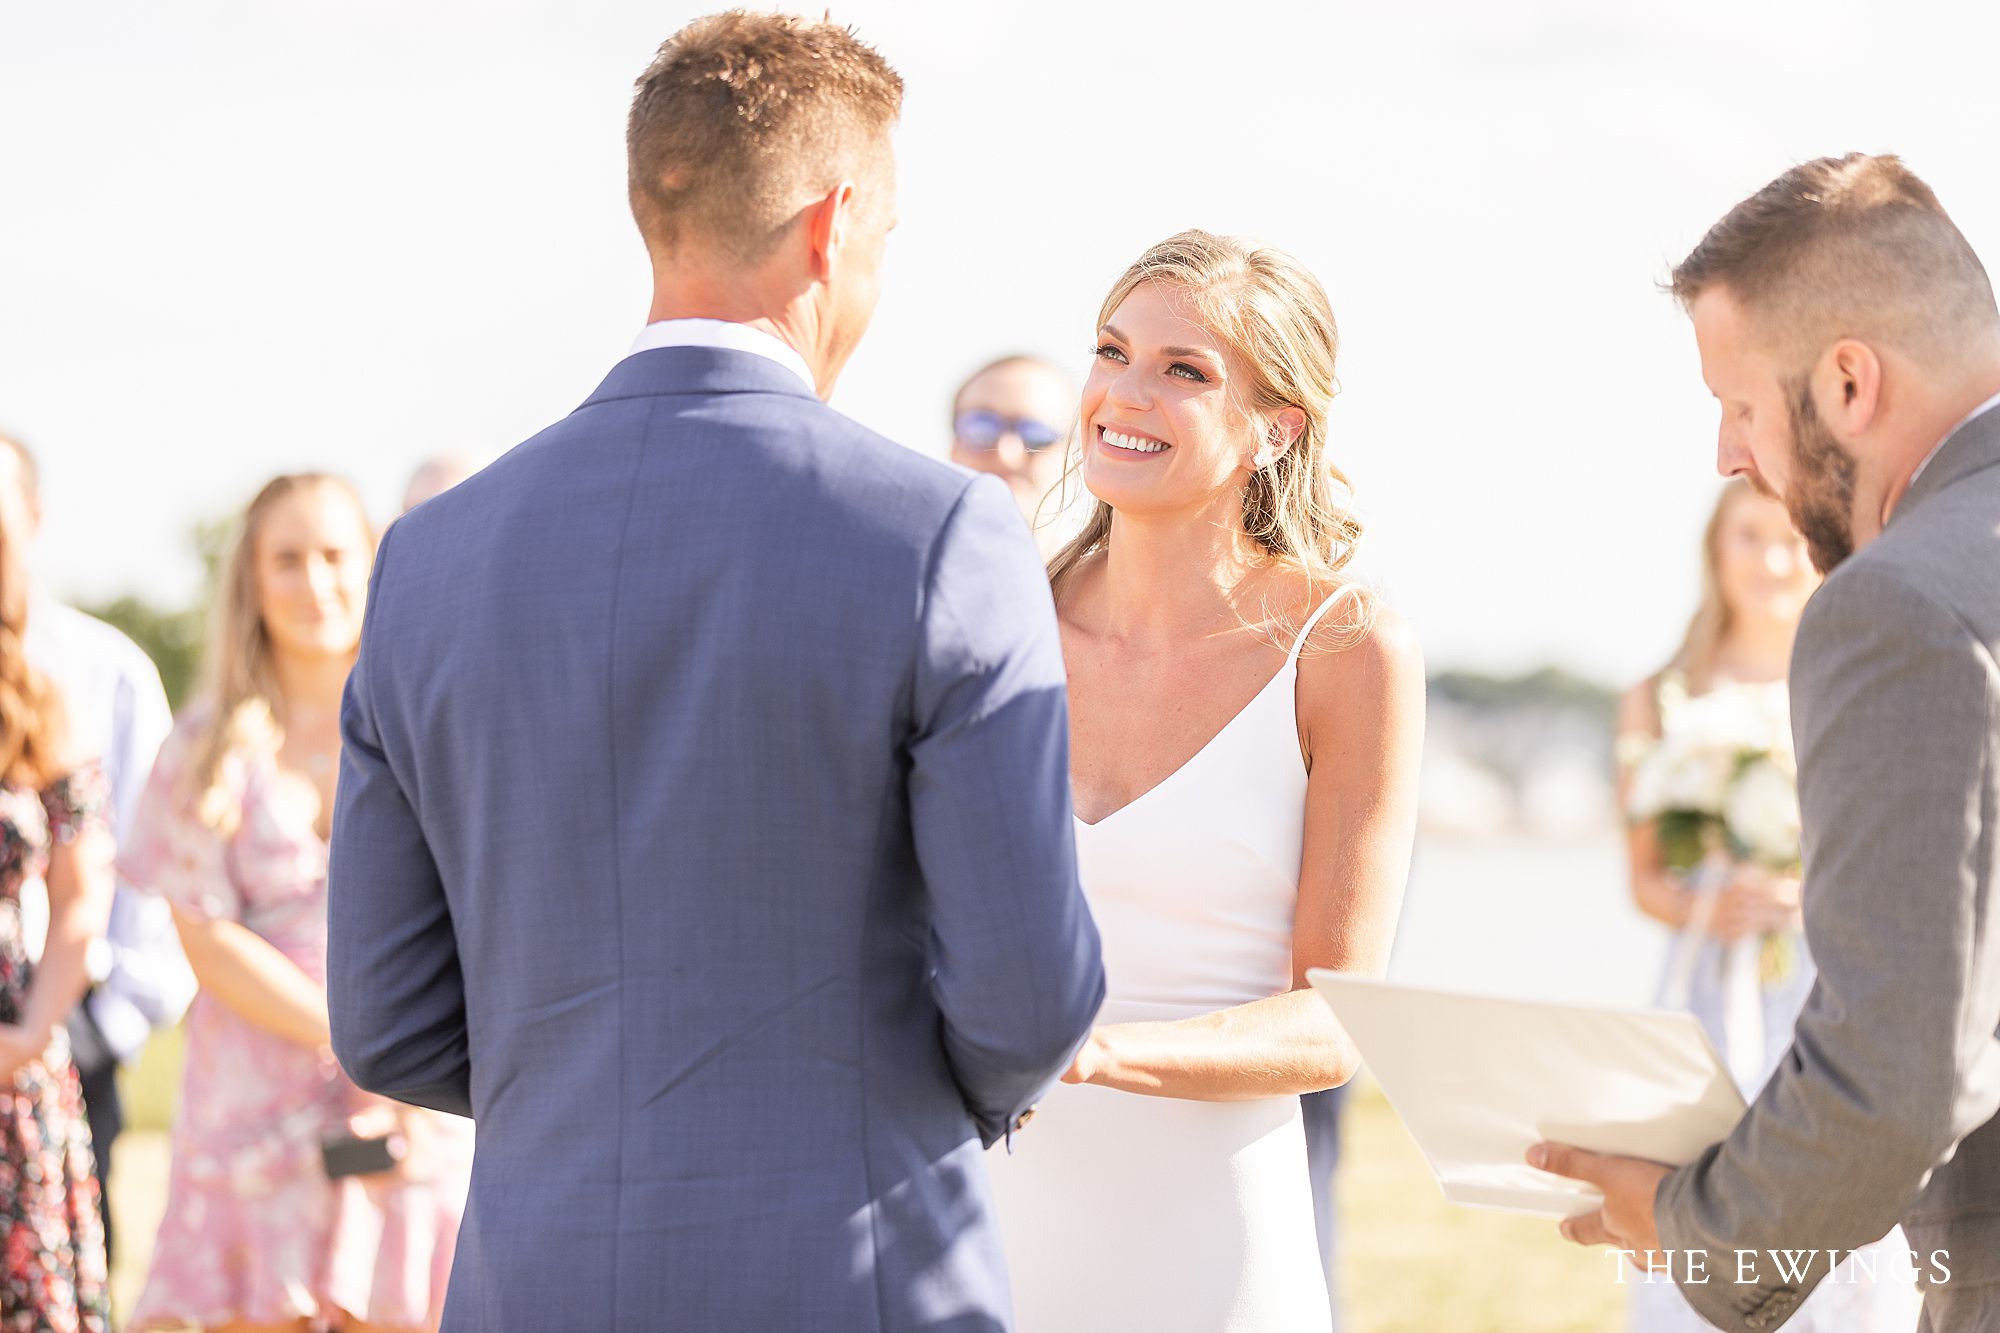 A bride and groom getting married during their intimate Boston Harbor Island wedding on Nut Island.